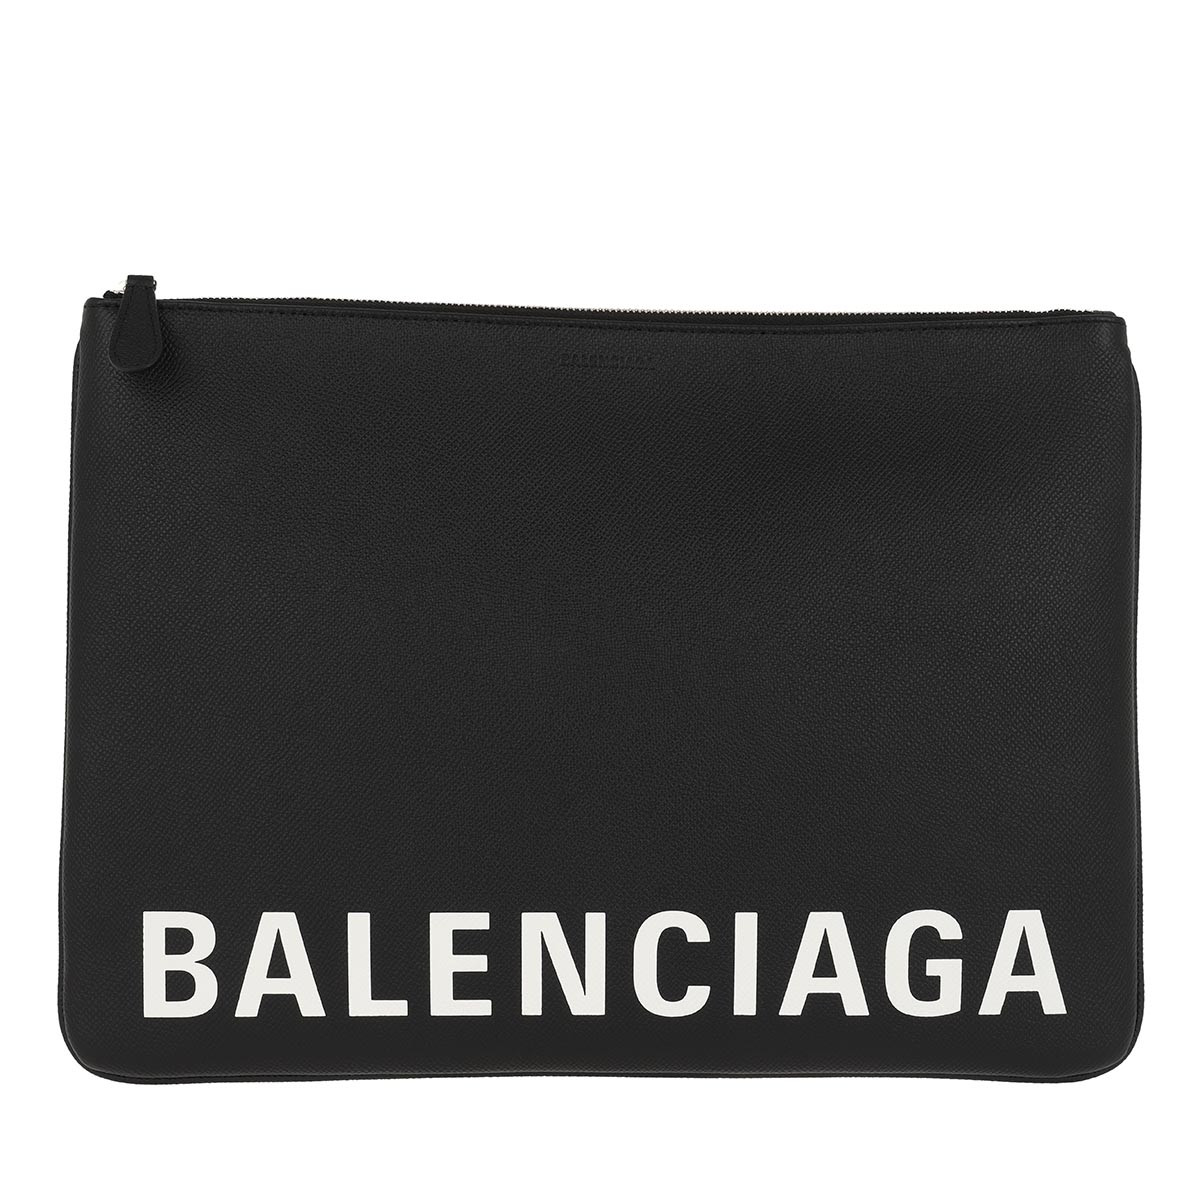 Balenciaga Clutch - Ville Clutch Bag Black/White - in schwarz - für Damen